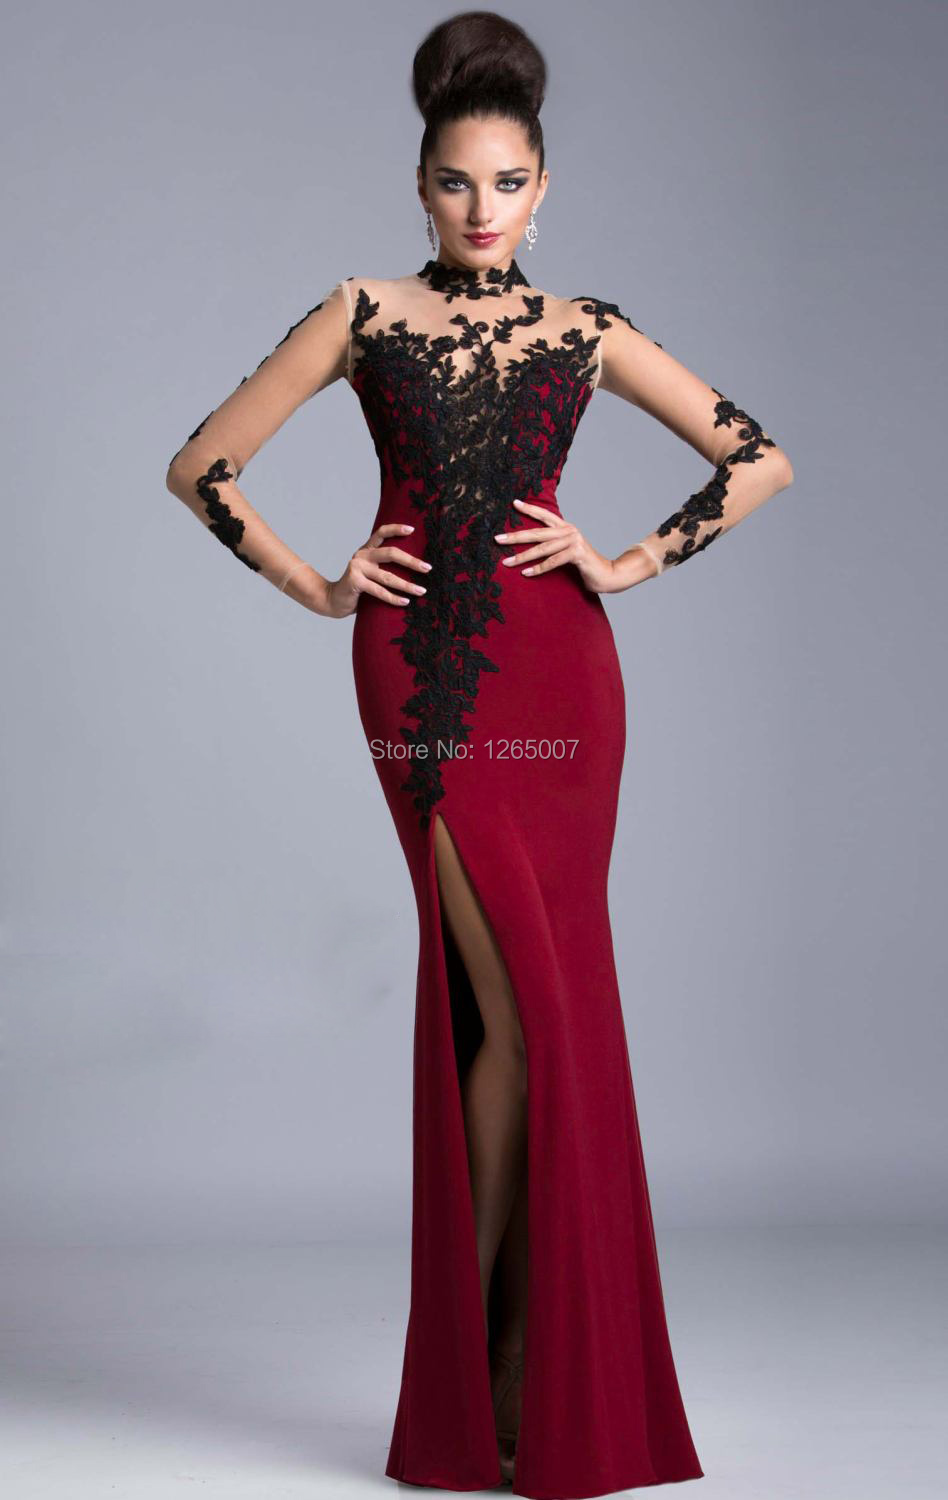 Hot Prom Gowns High Neck Long Sleeves Black And Red Mermaid Prom ...